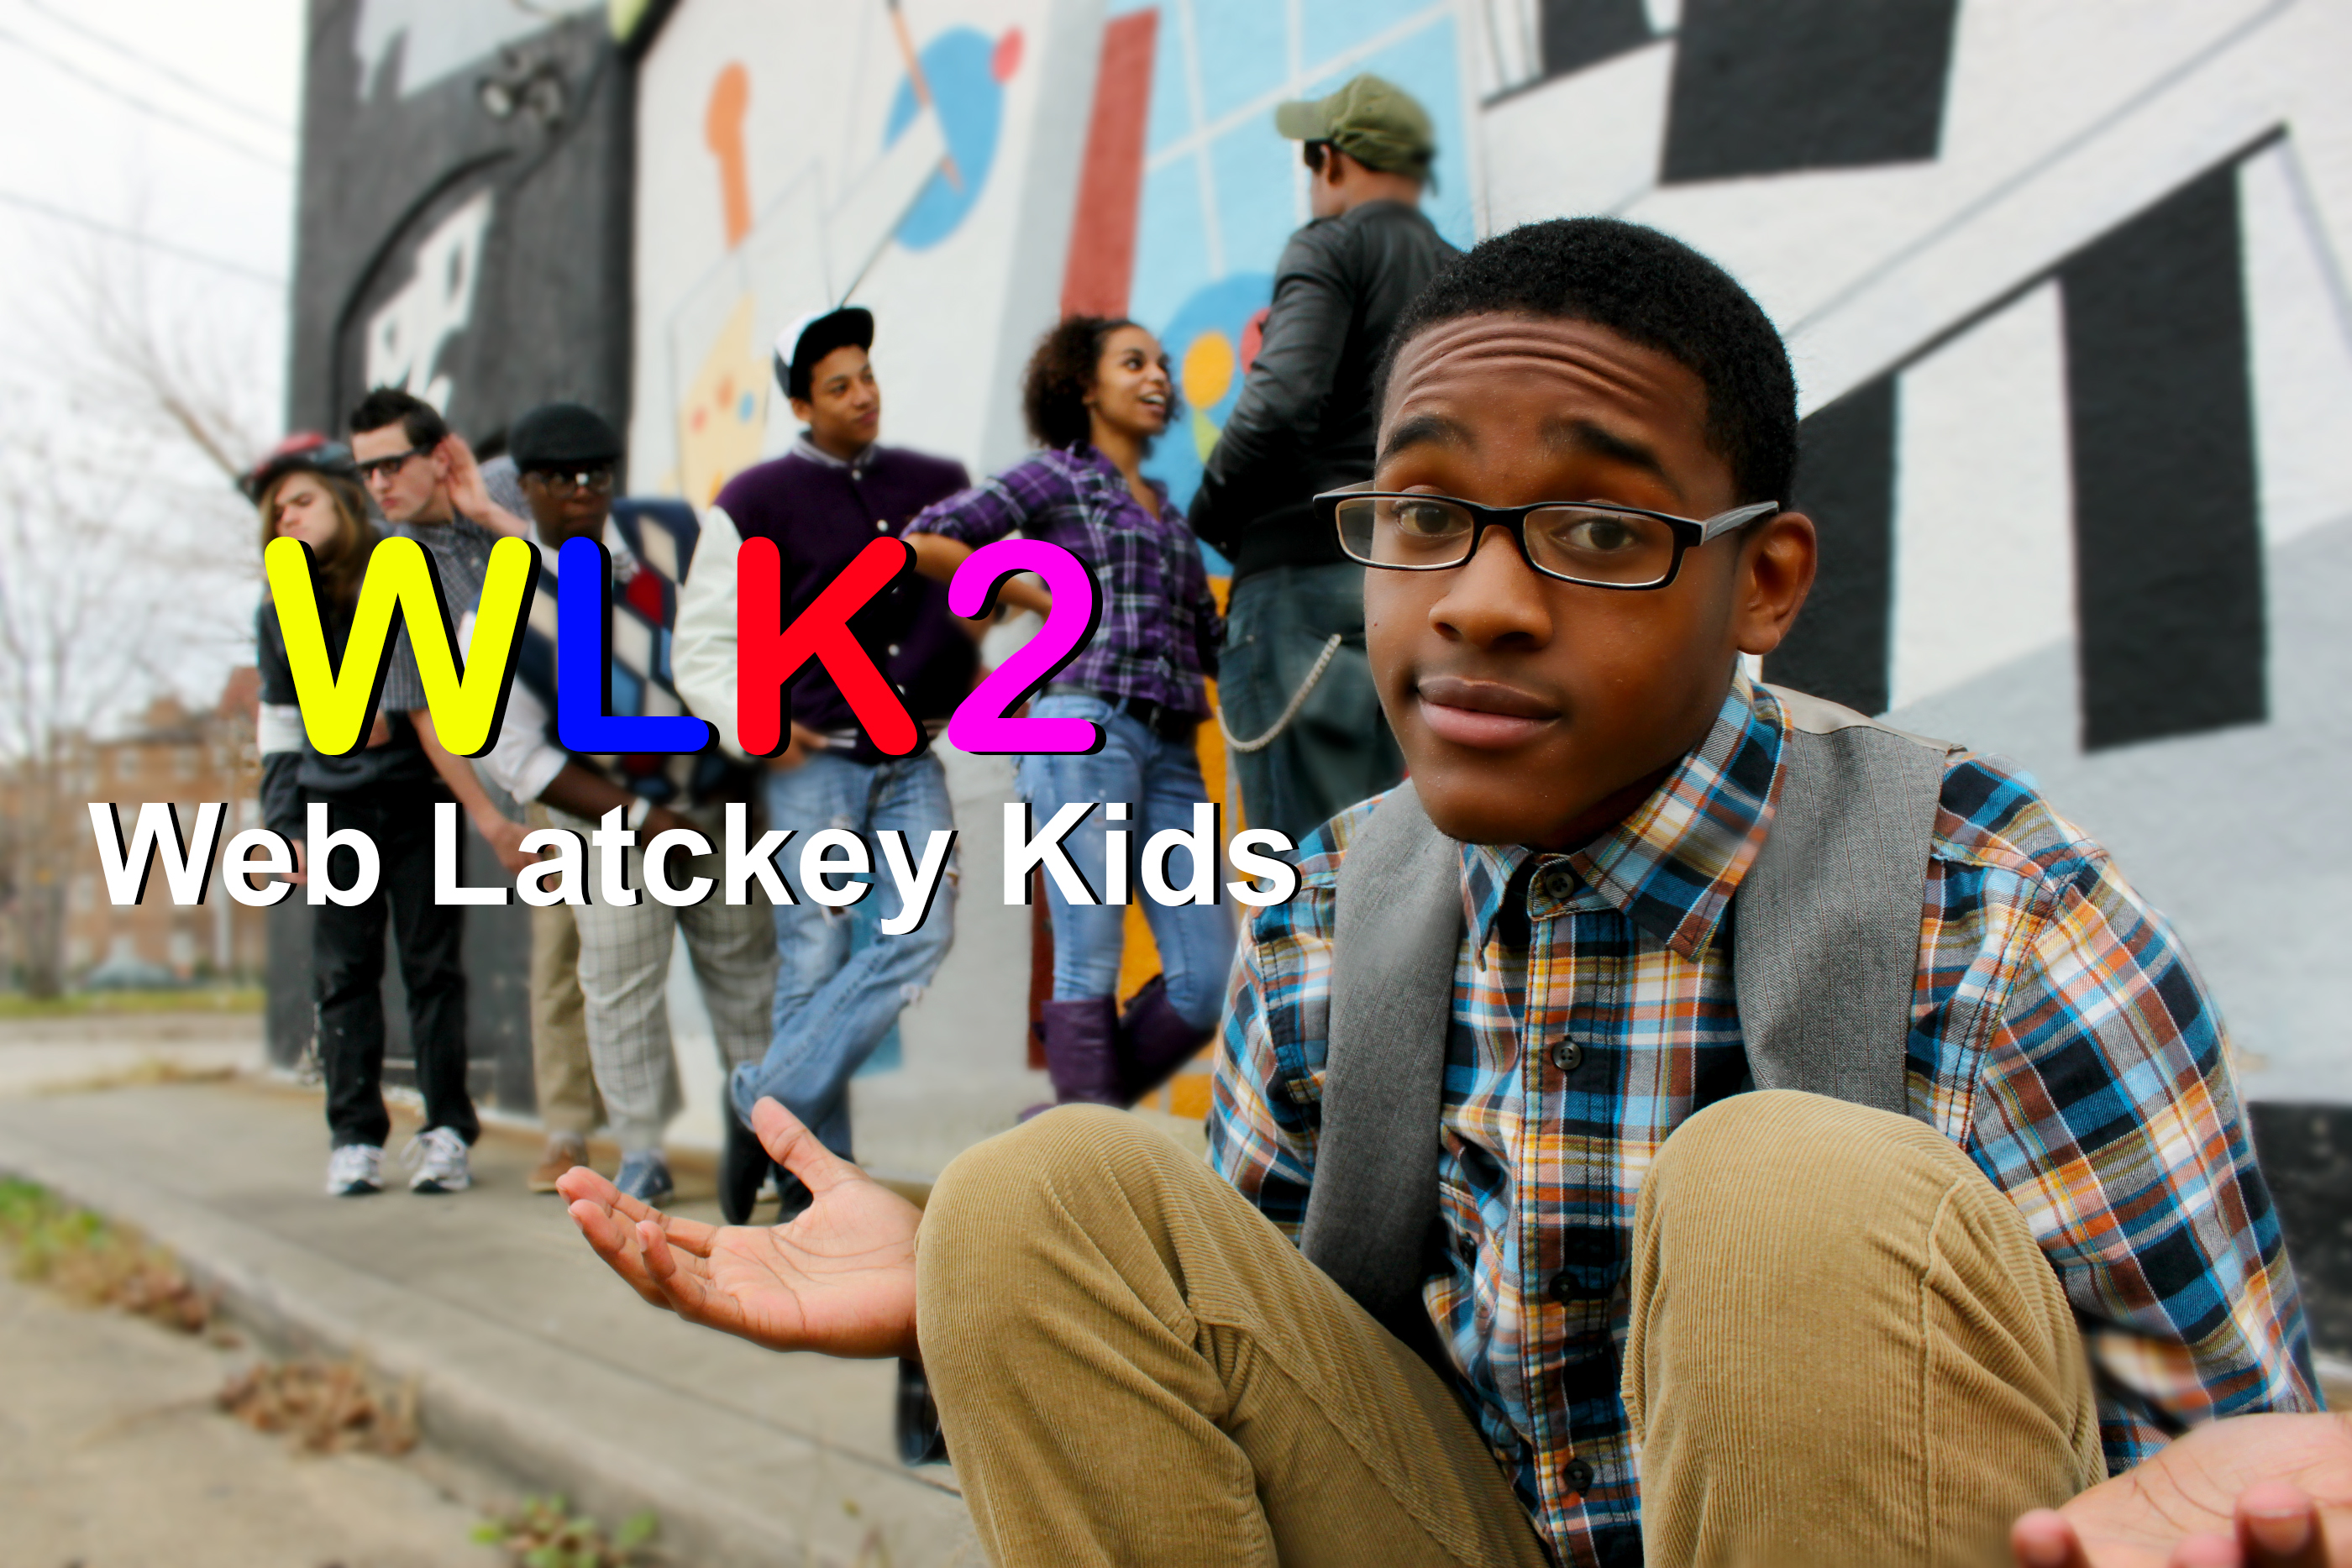 Web Latchkey Kids